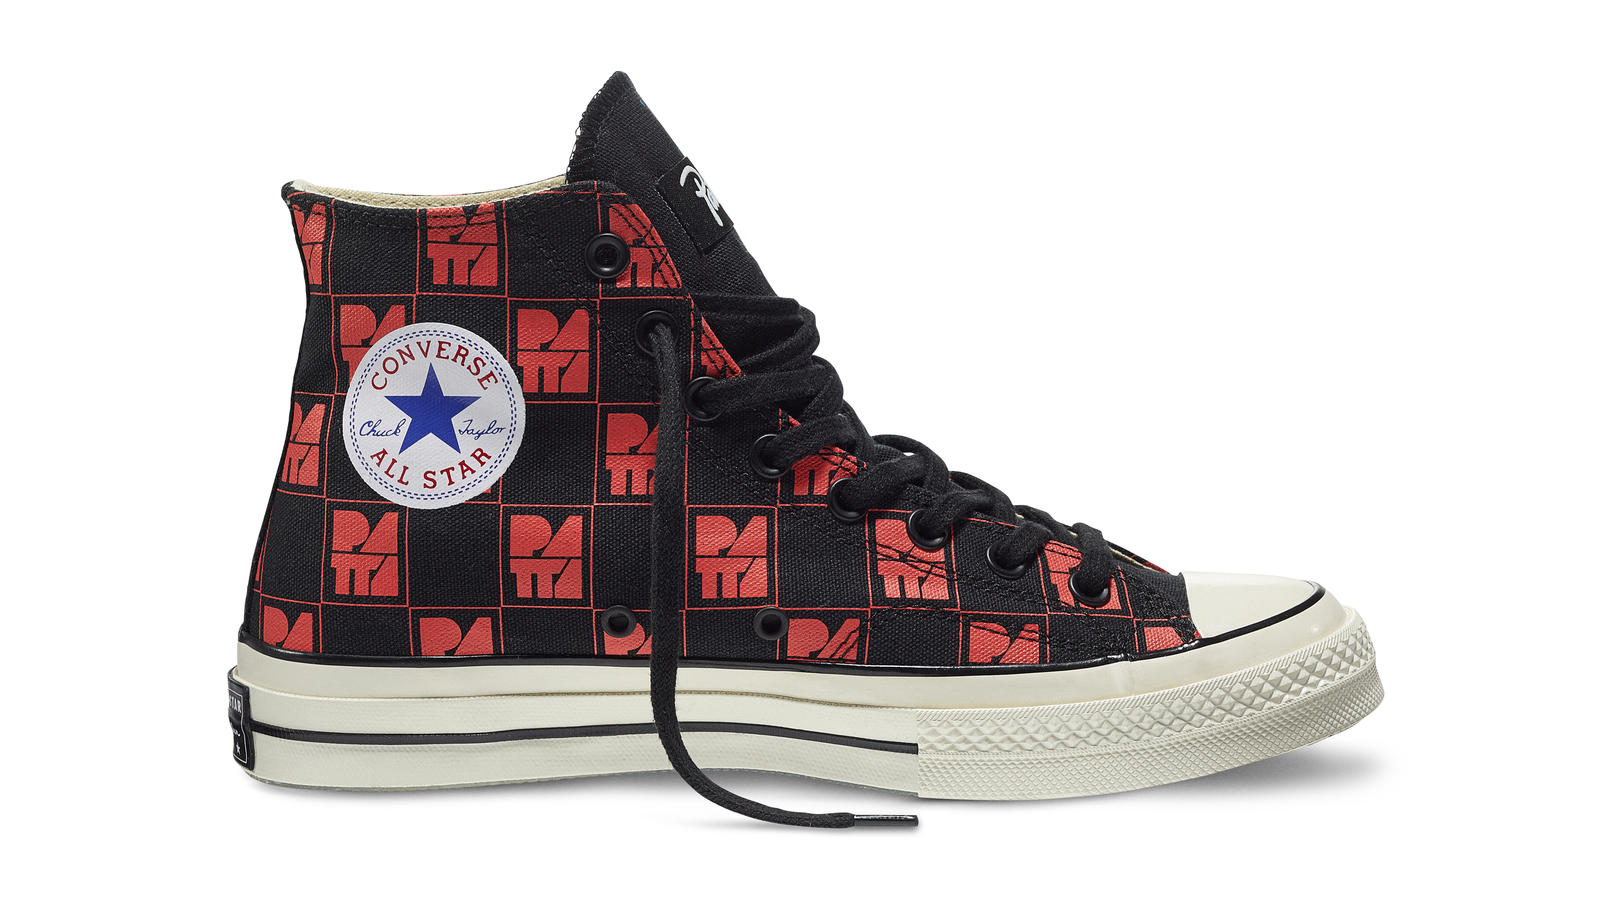 Converse All Star Ct70 Patta10 Black Red Original